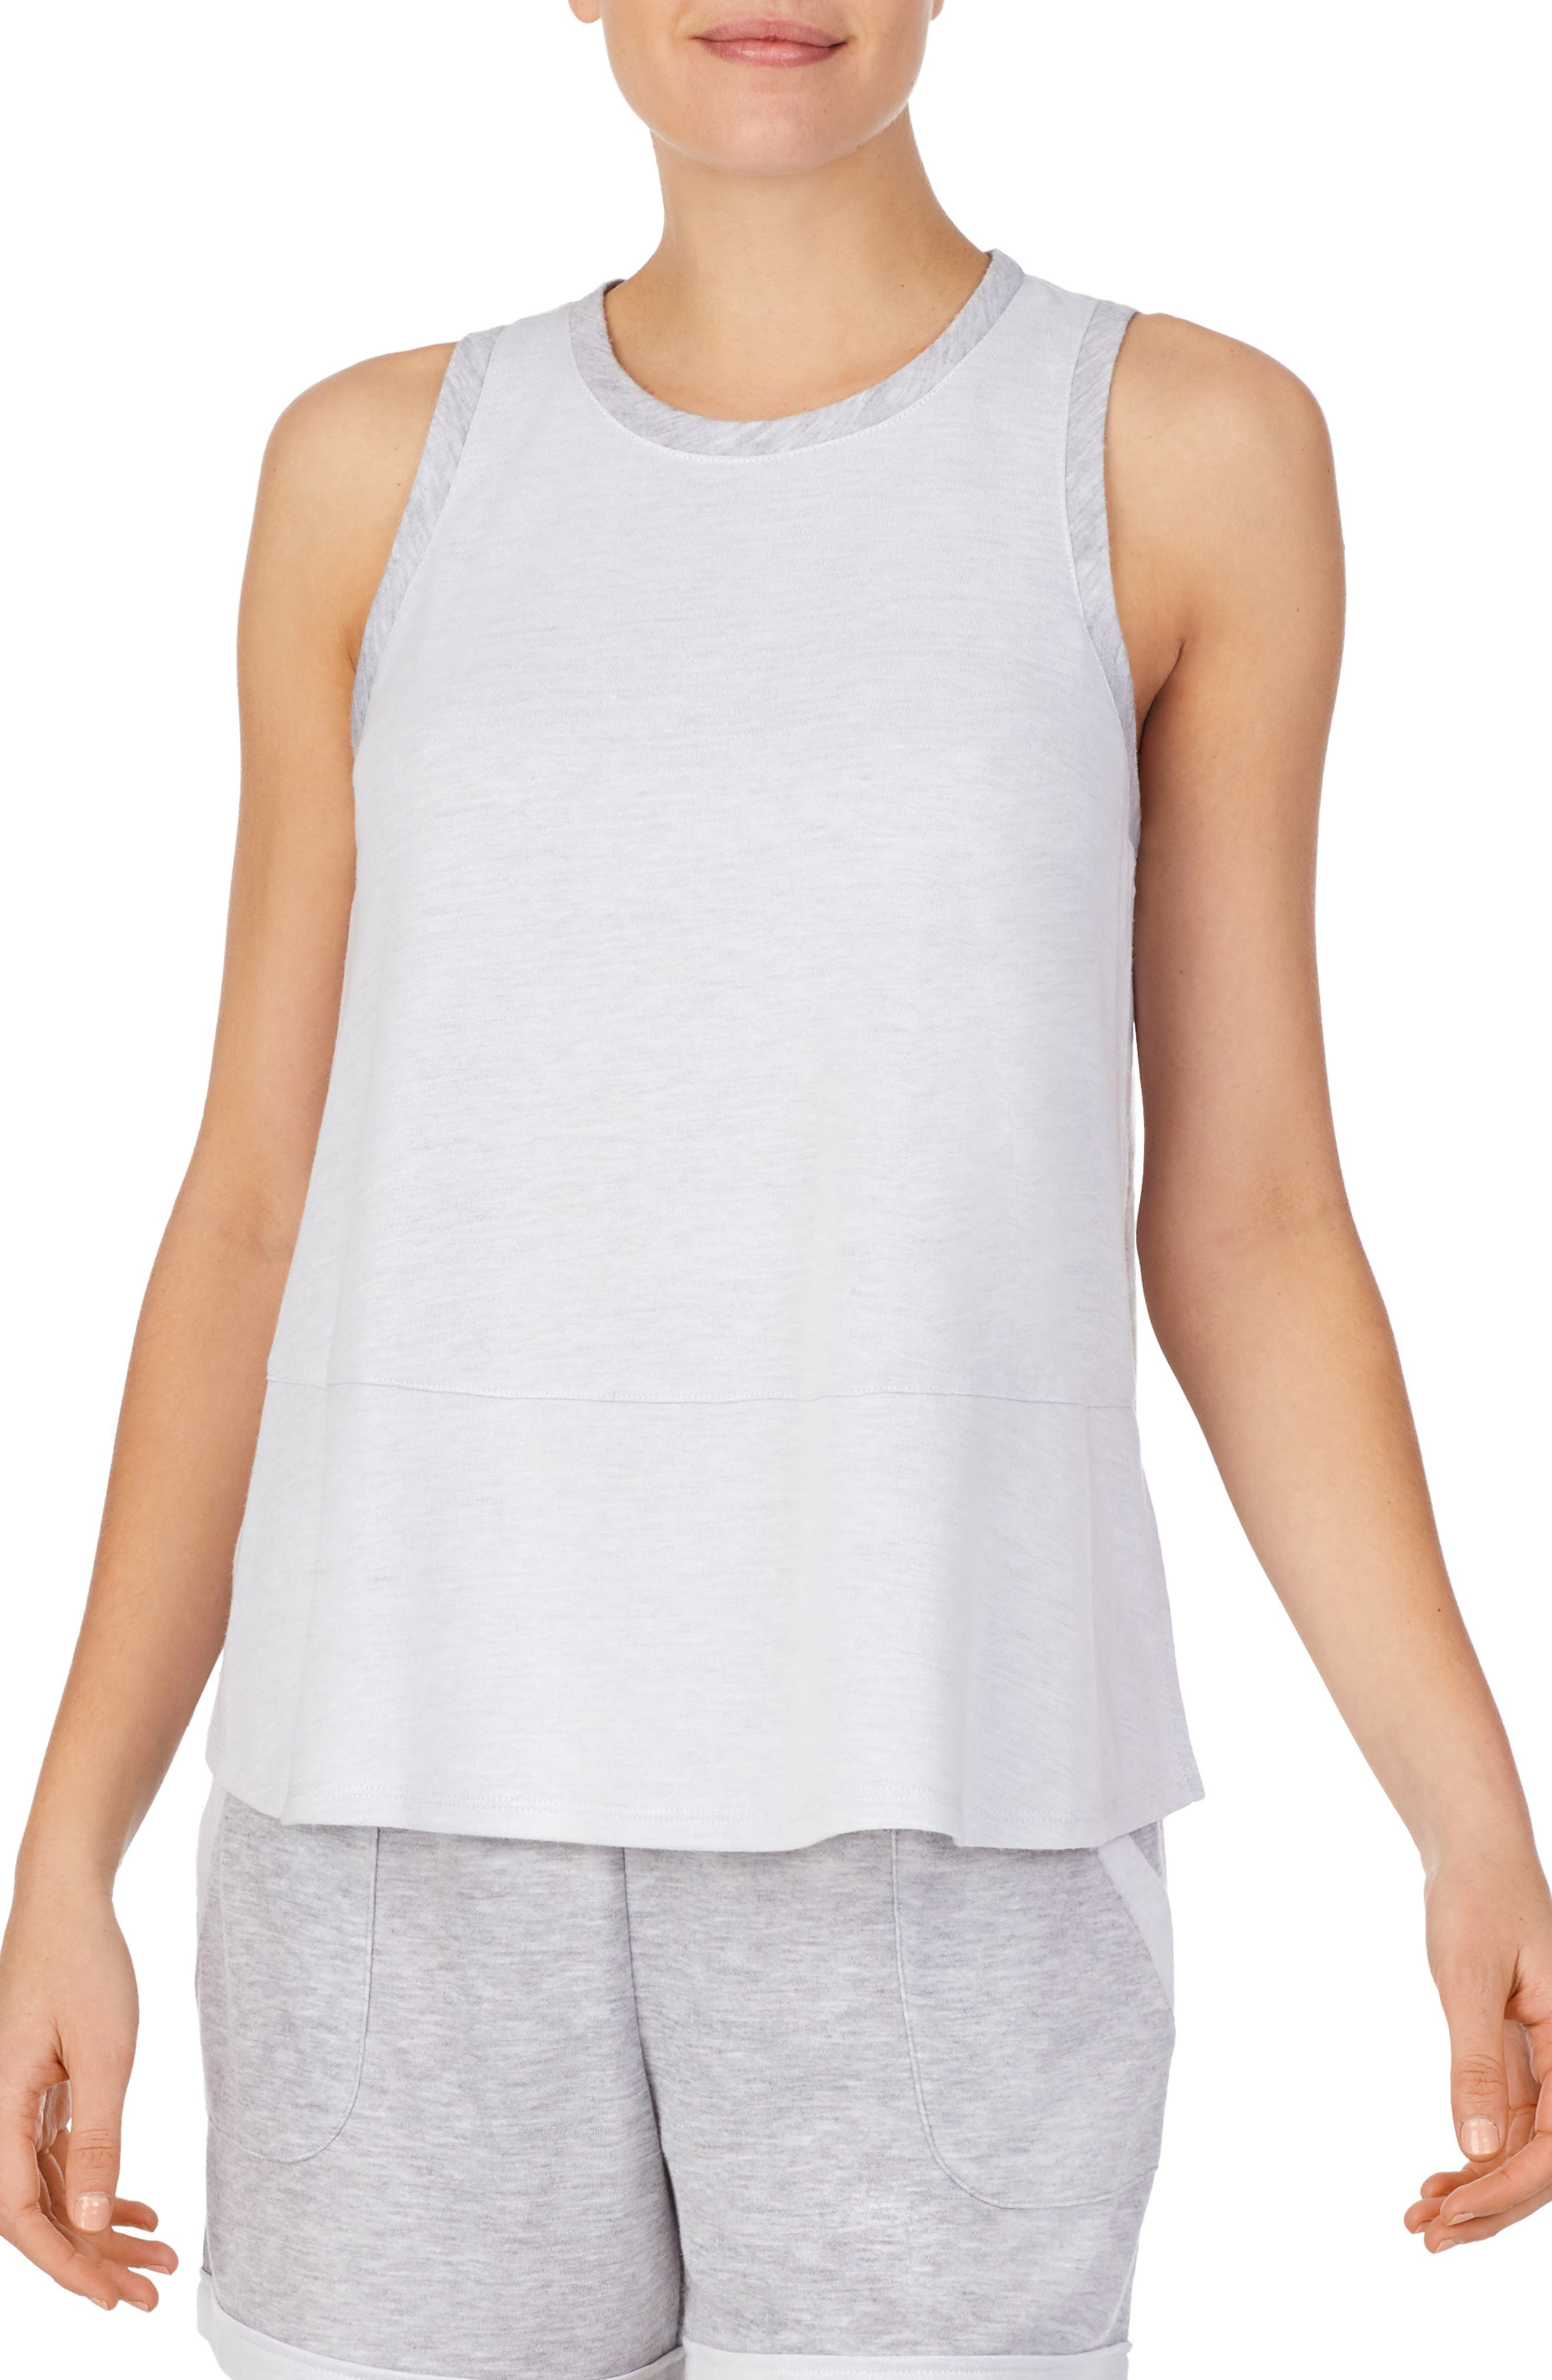 Image of Refinery29 High Neck Double Knit Tank